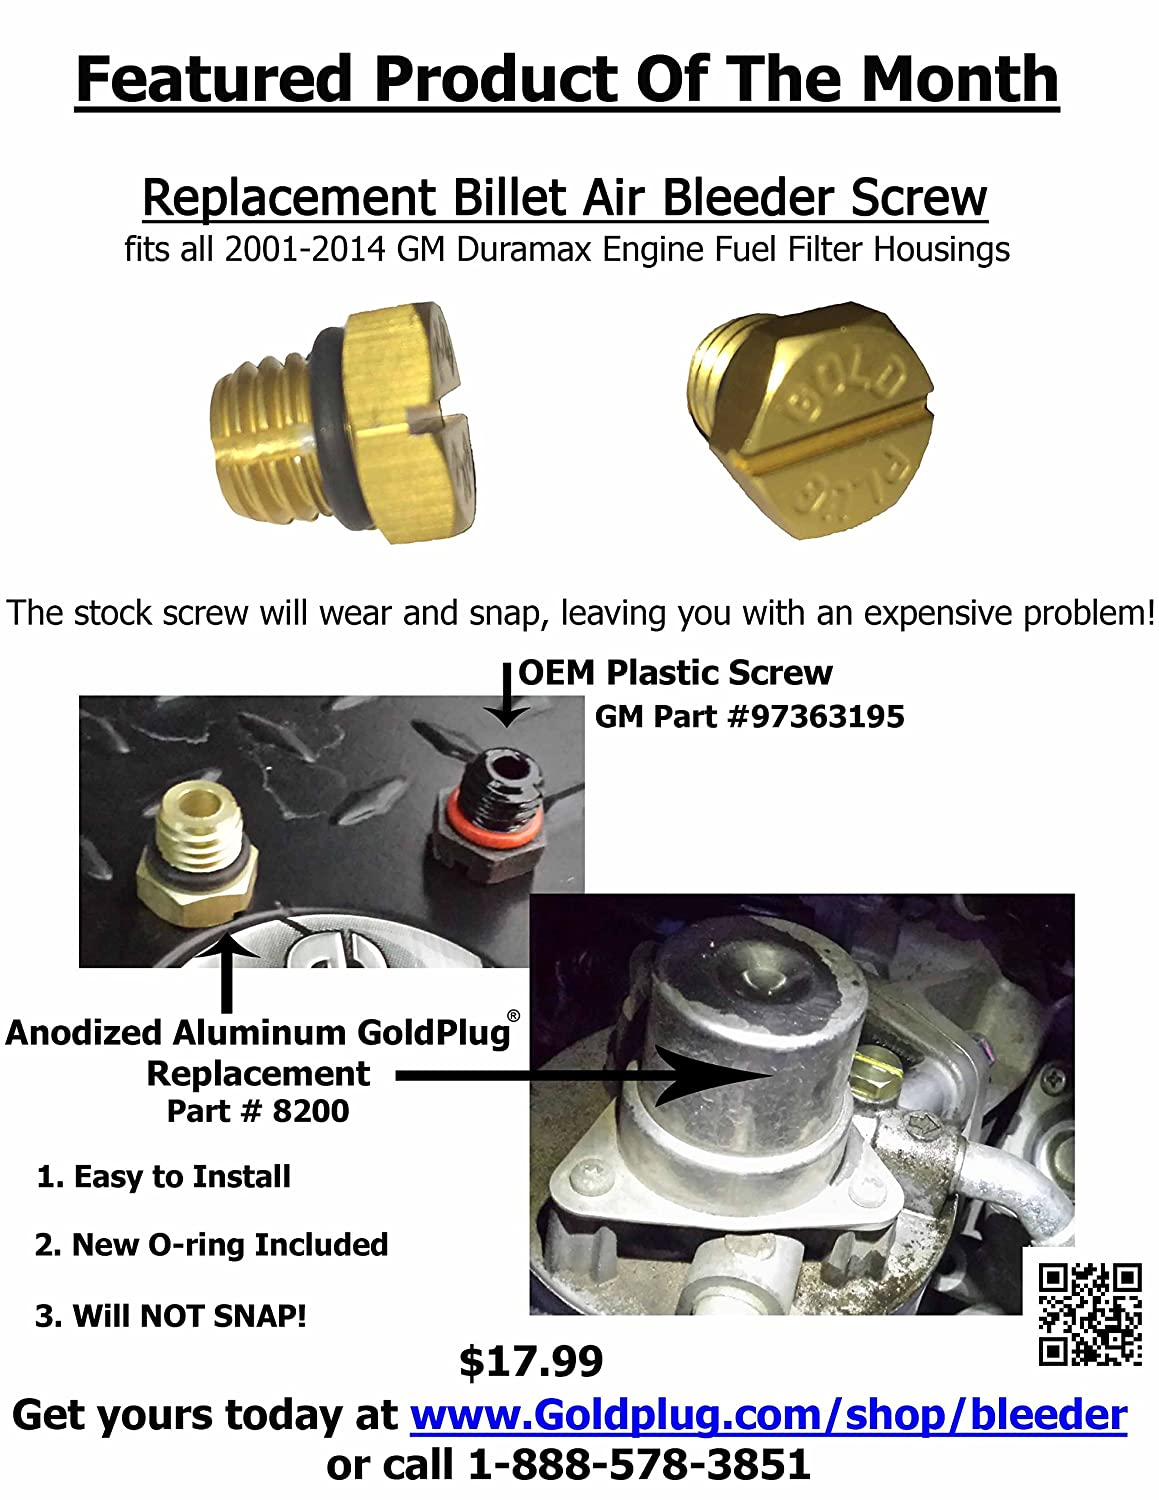 Gold Plug 8200 Billet Air Bleeder Screw For 2001 2016 Gm Fuel Filter 04 14 0l Frieghtliner Duramax Housing Automotive